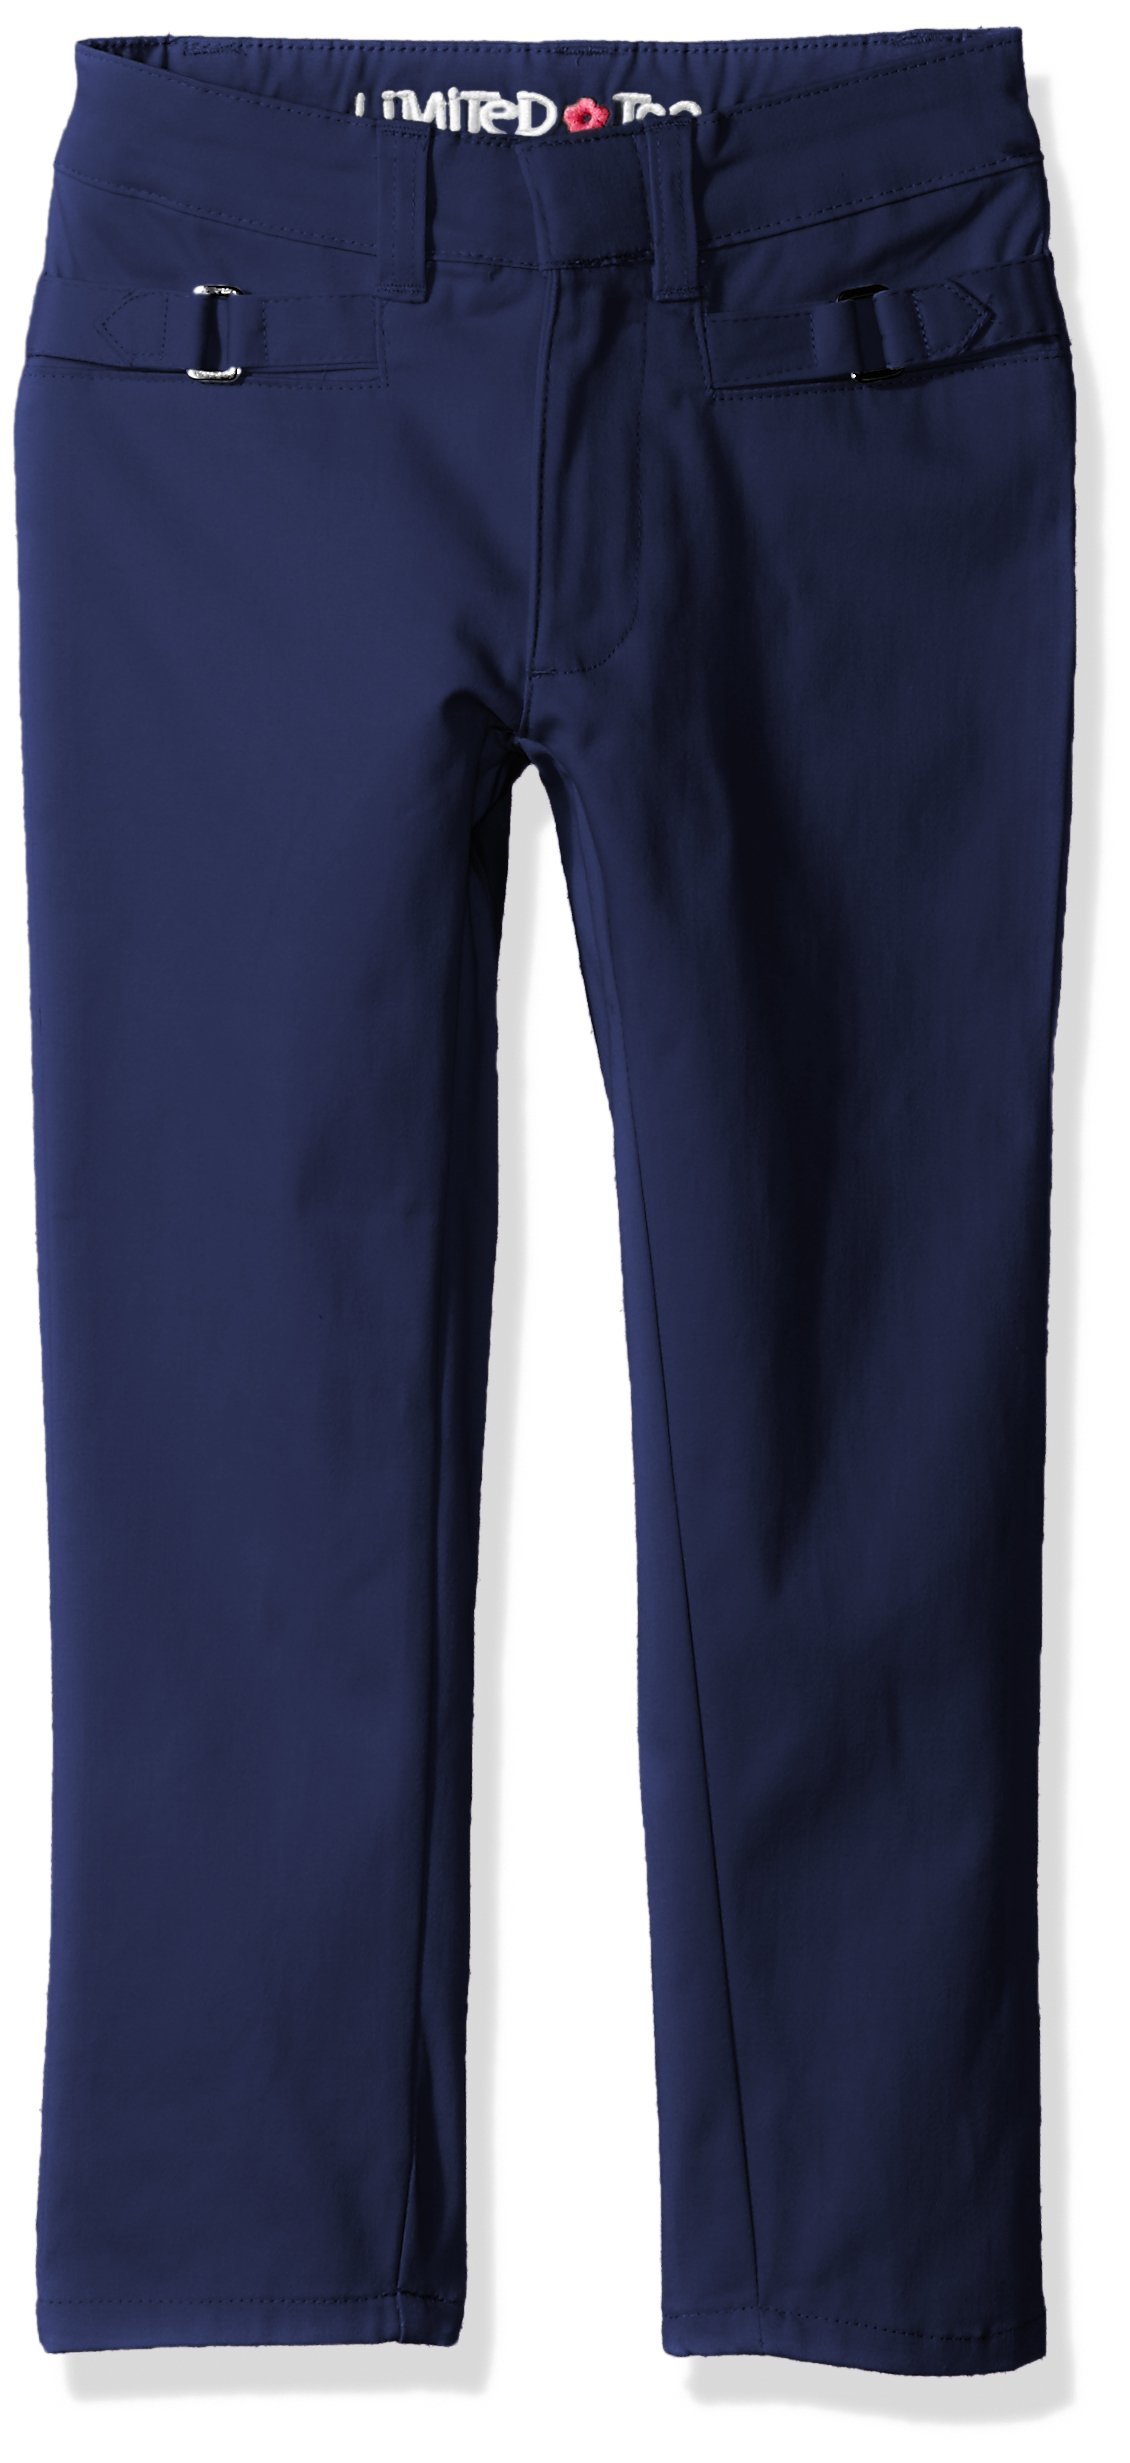 Limited Too Girls' Twill Pant (More Styles Available), Basic Navy, 5